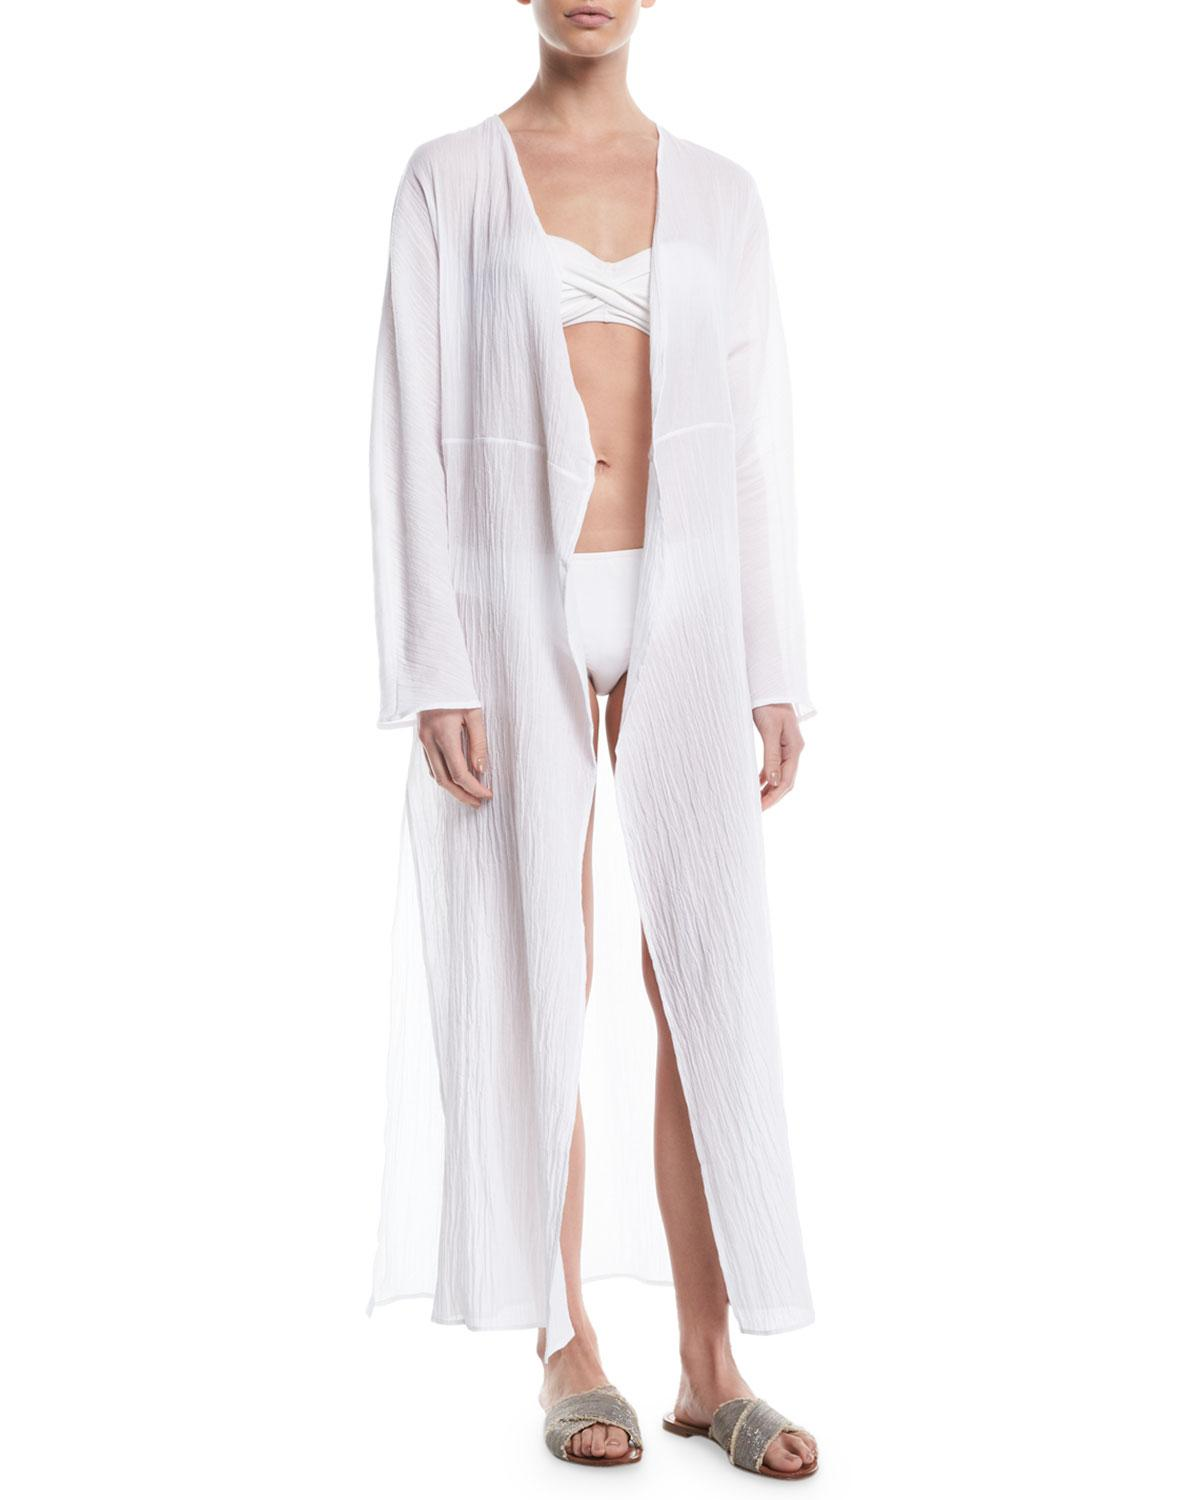 272dcab6e6 Lyst - Pondicherie Mata Open-front Long-sleeve Swim Coverup in White